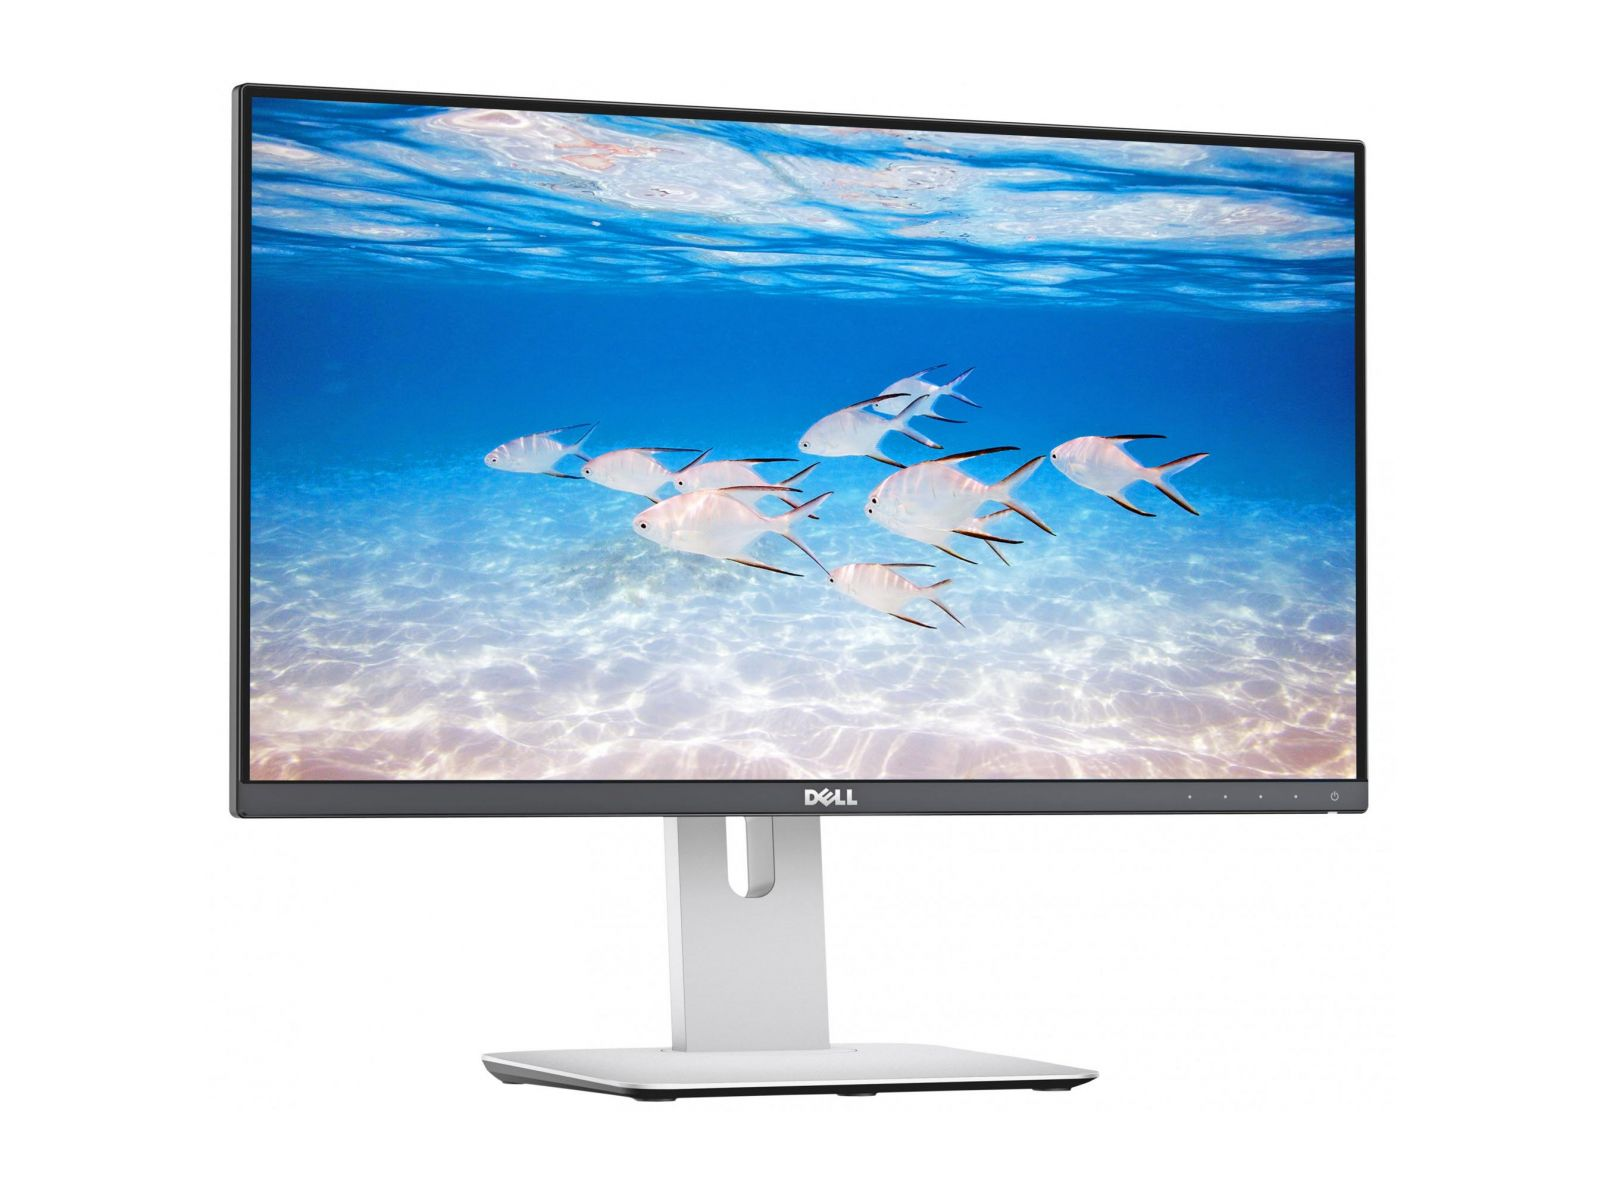 Màn hình Dell E2420H 24 Inch FHD (1920 x 1080) LED Backlit LCD IPS